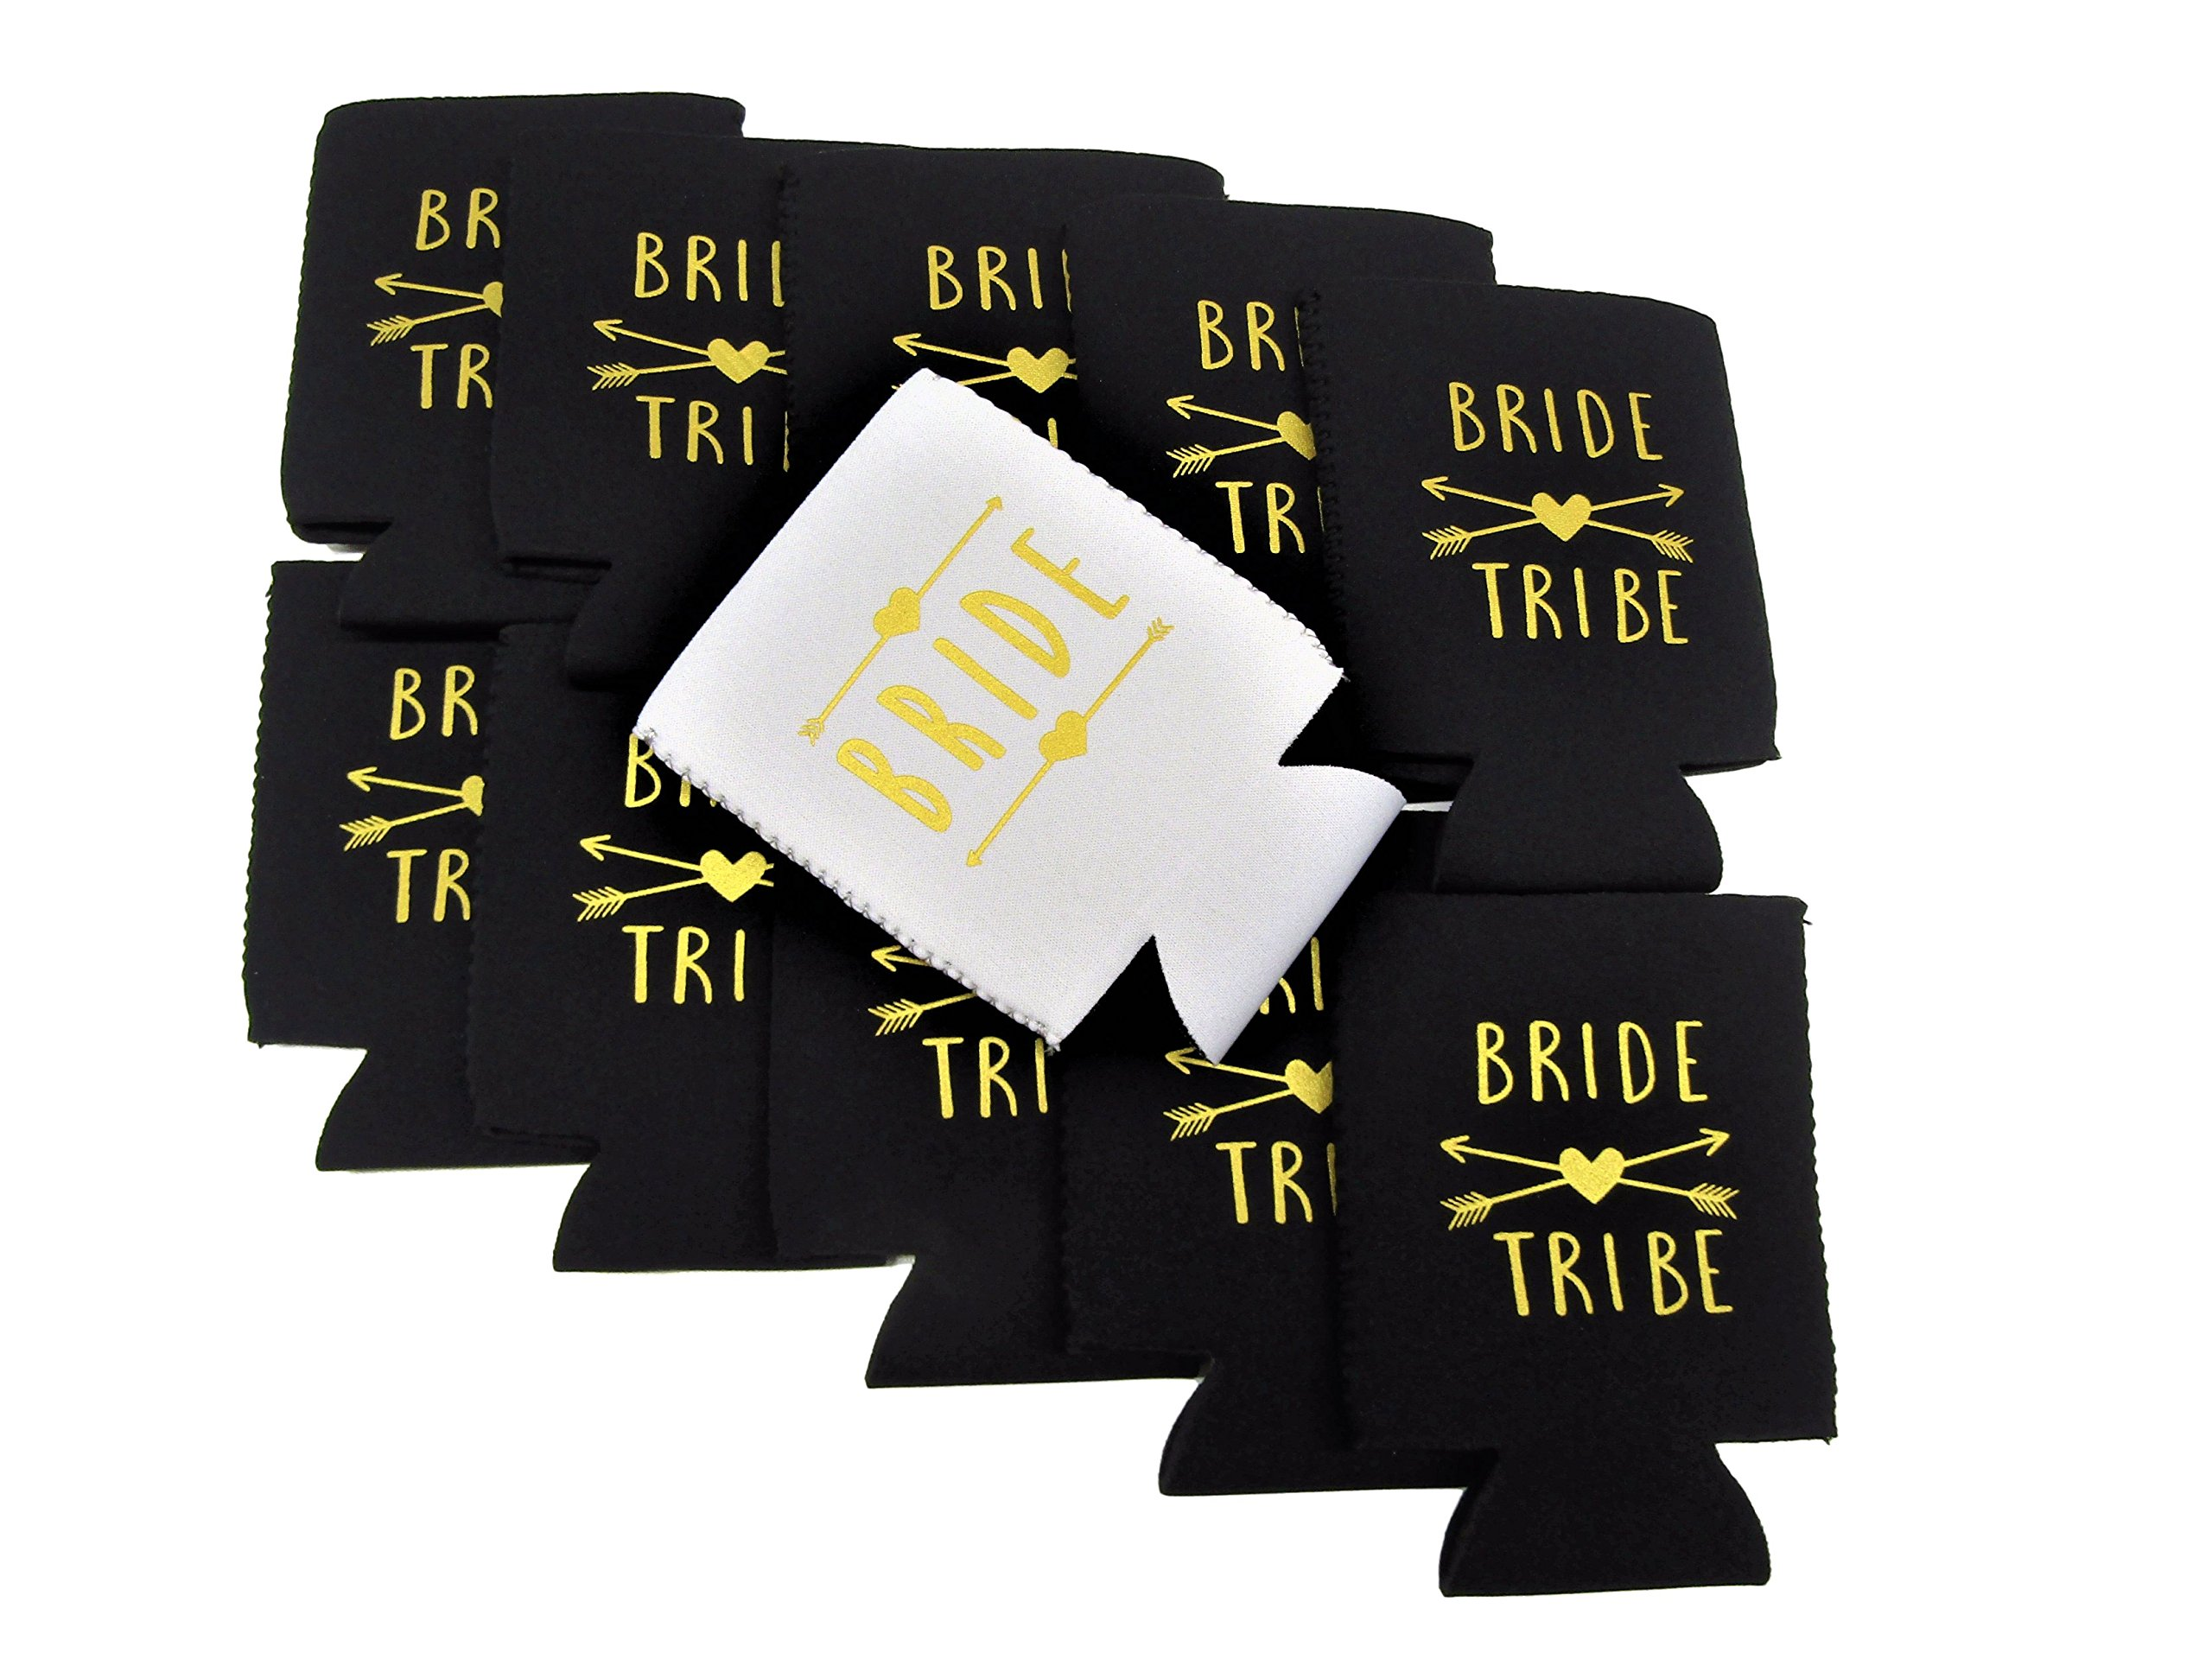 Bachelorette Party Bride and Bride Tribe Can Cooler Set - 11 Pack - INCLUDES 12 MATCHING TEMPORARY TATTOOS